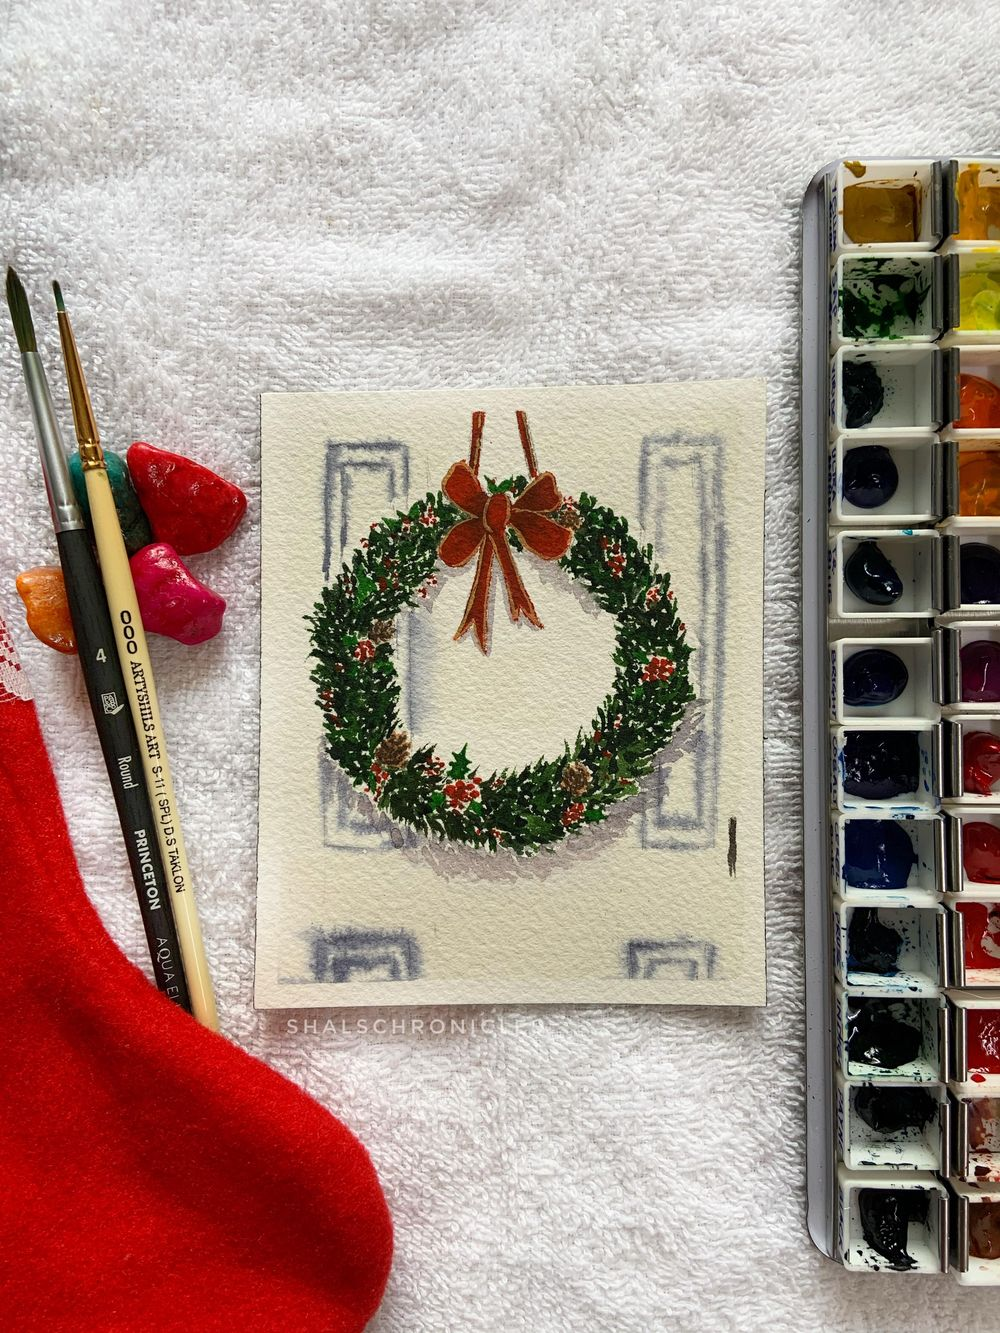 Christmas scenes - image 3 - student project